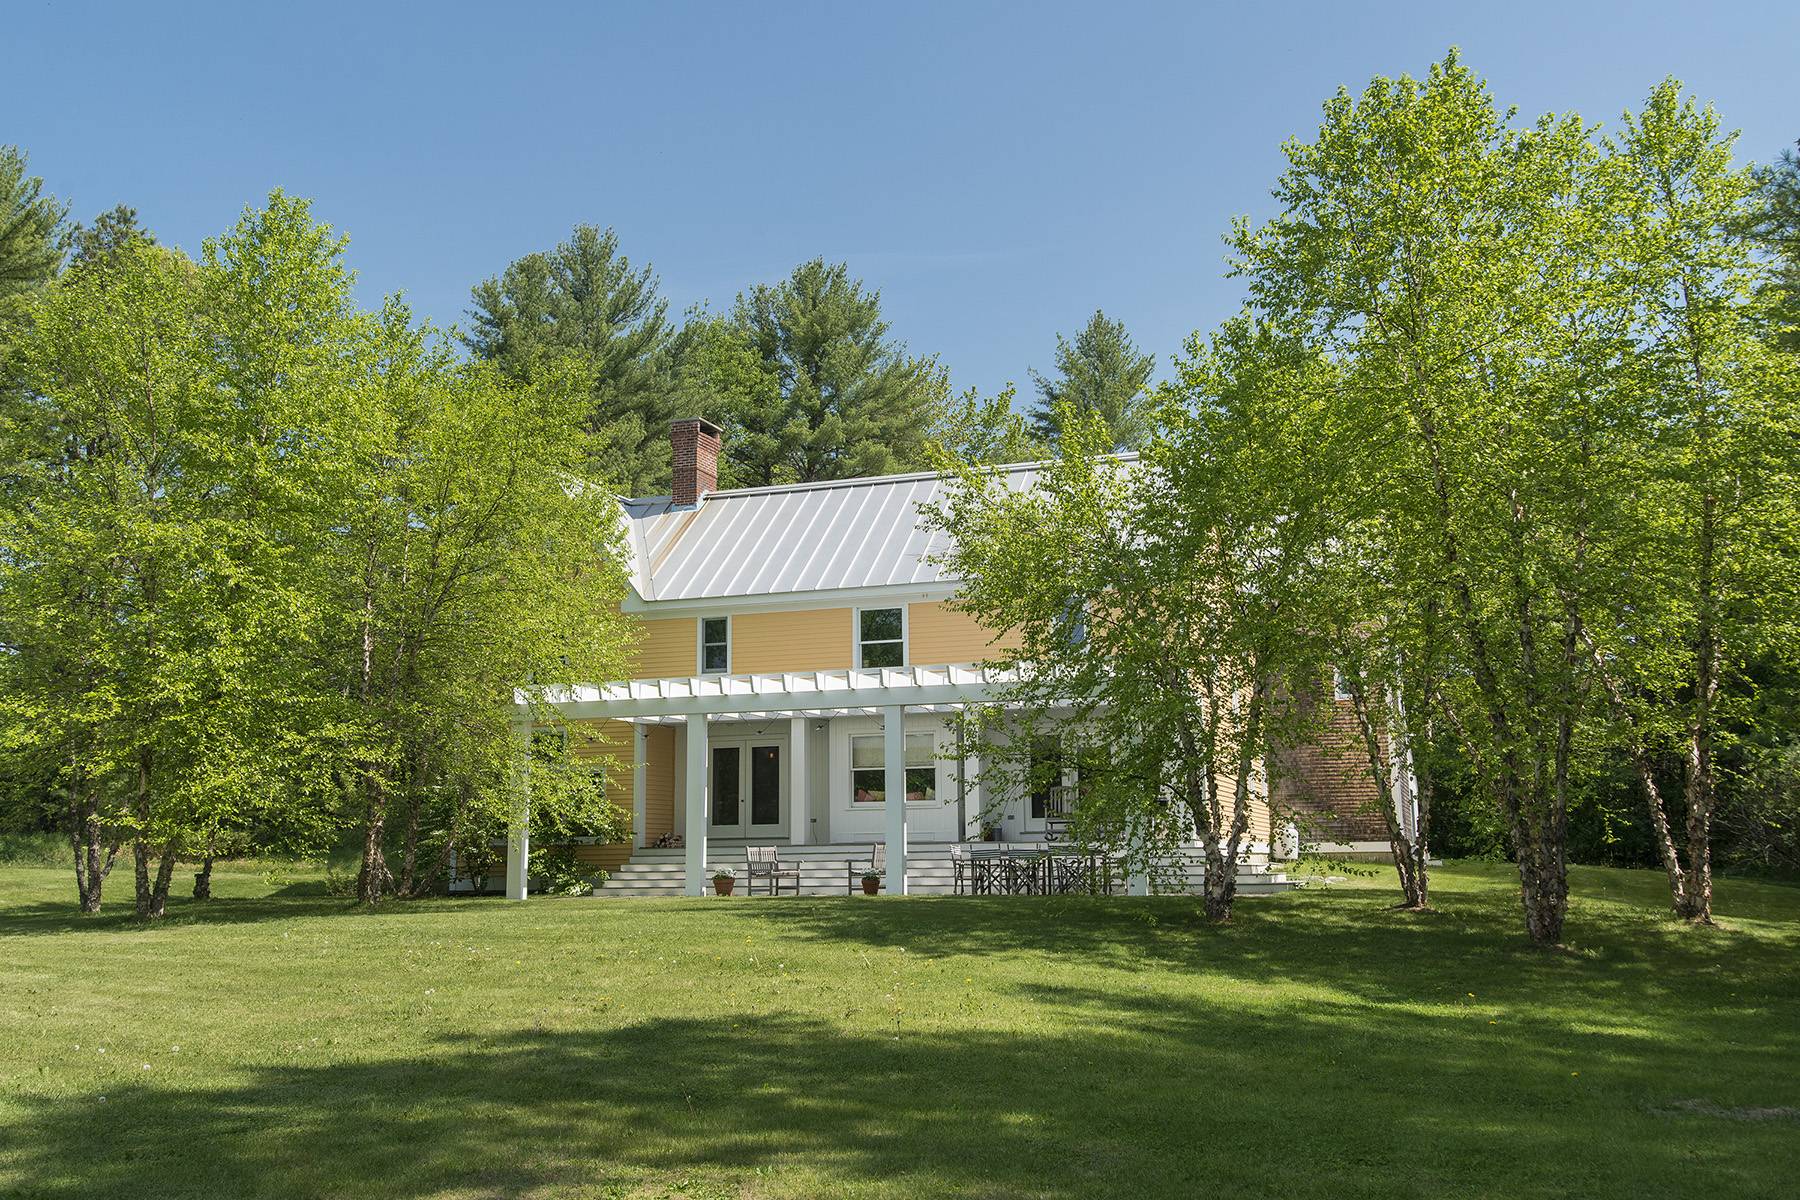 Single Family Home for Sale at 53 Field Road Cumberland, Maine 04021 United States